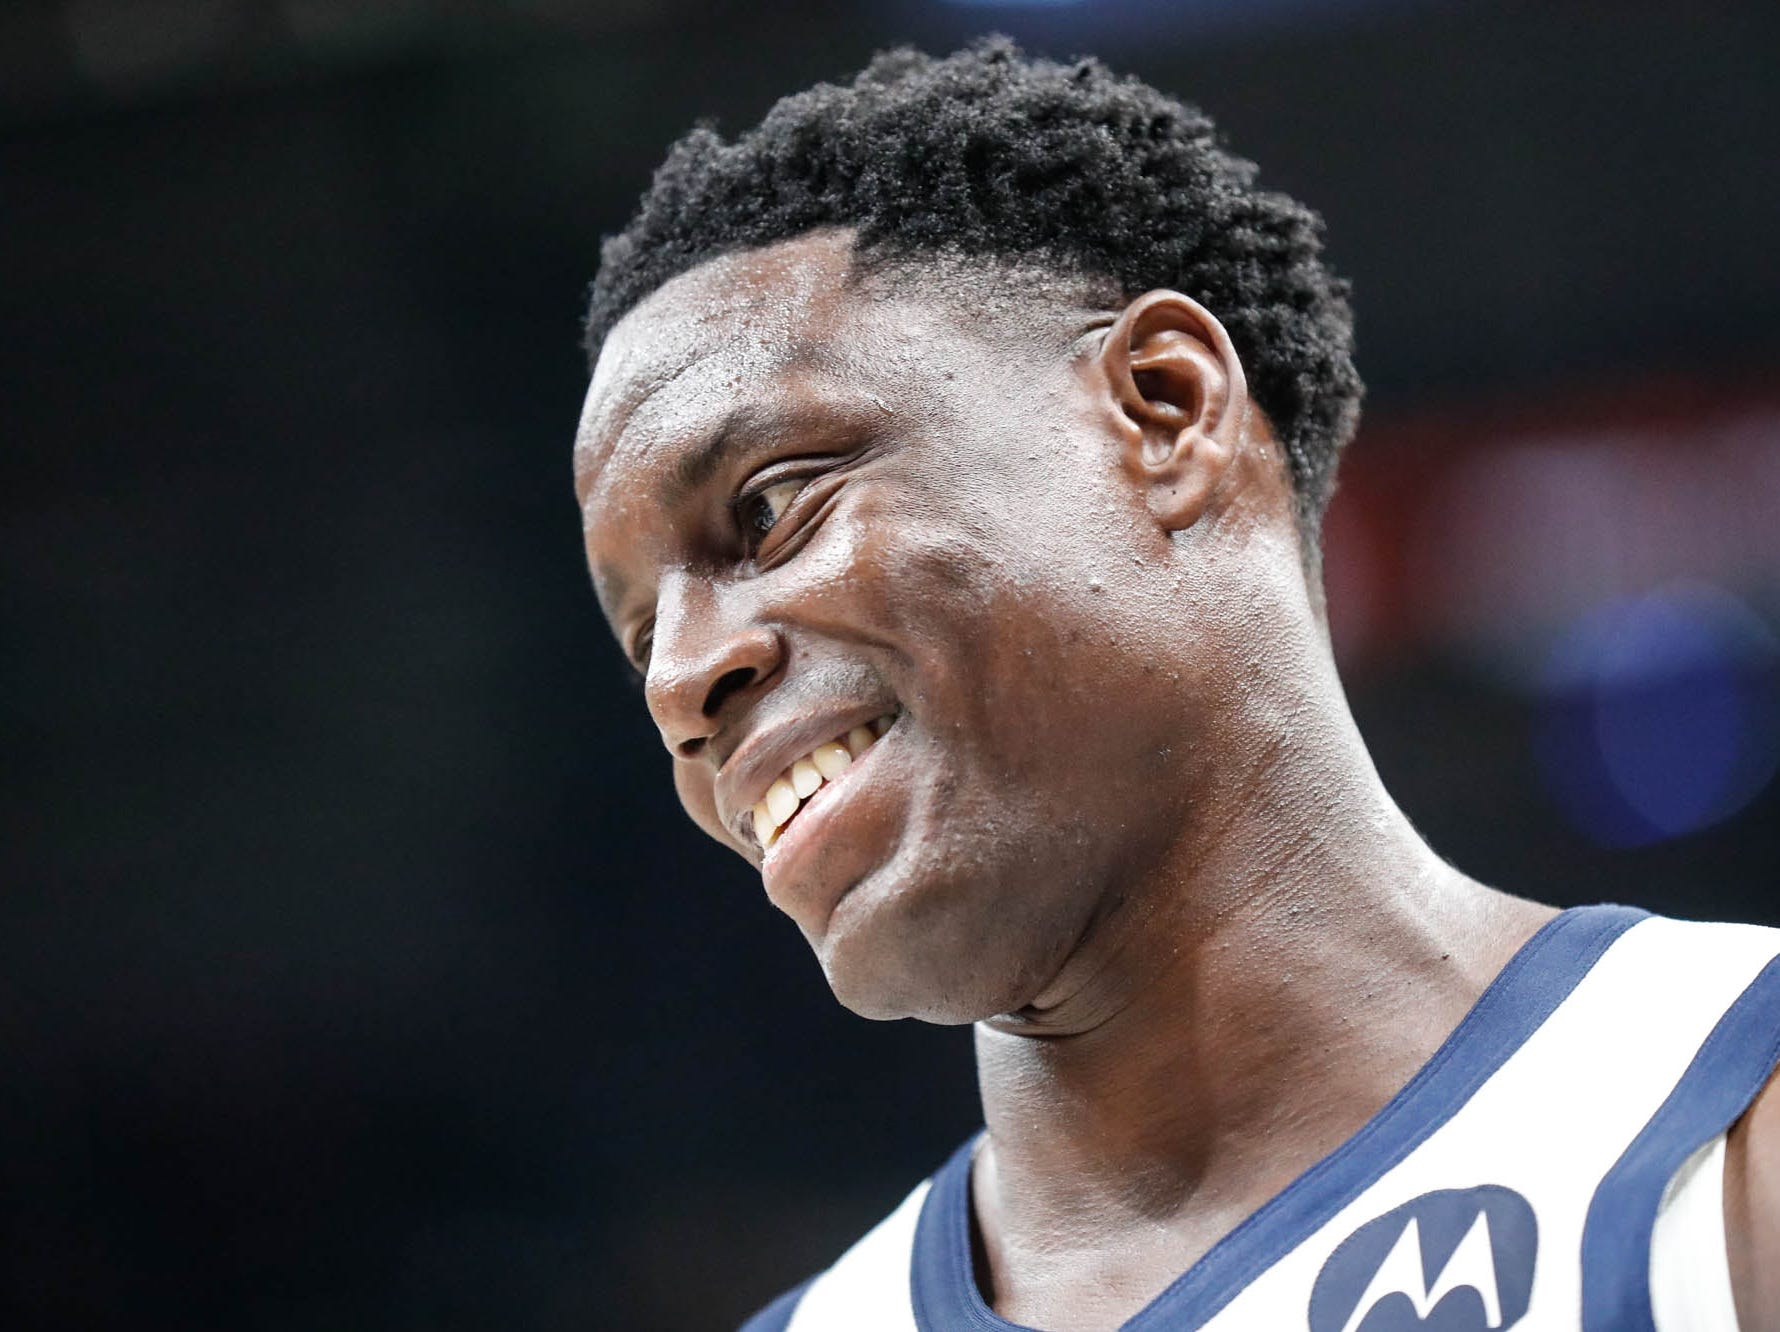 Indiana Pacer's guard Darren Collison (2) giggles after getting hit hard in the shins by a teammates pass during a game between the Indiana Pacers and the Detroit Pistons at at Bankers Life Fieldhouse in Indianapolis on Friday, Dec. 28, 2018.